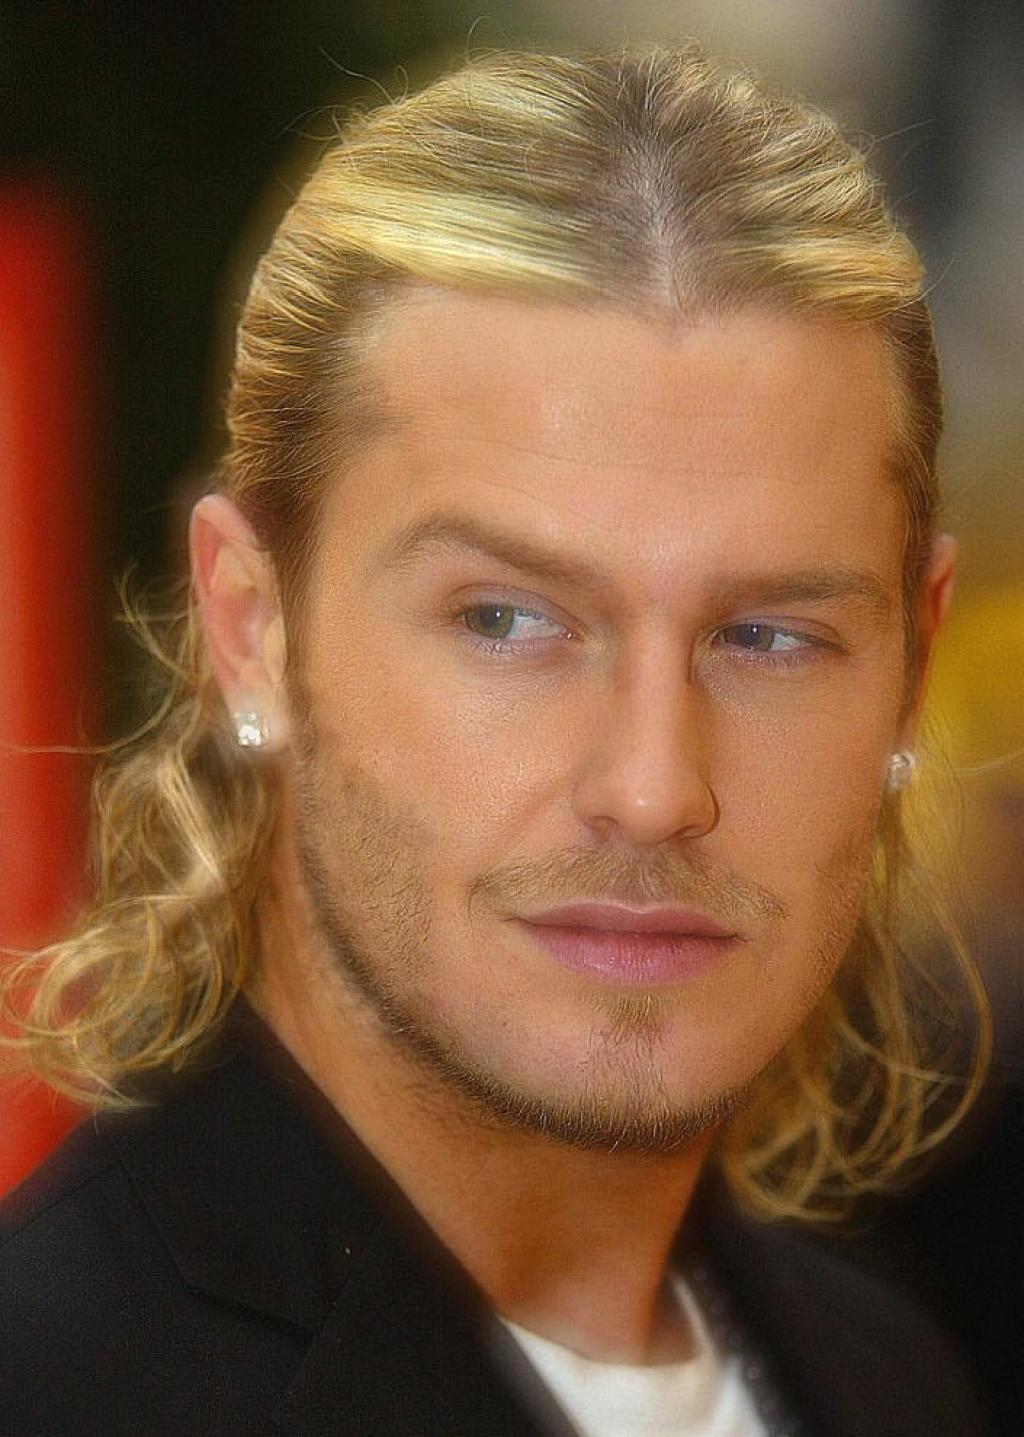 http://2.bp.blogspot.com/-u9acwHgKBFE/TeySdiaR1EI/AAAAAAAABHM/ws0hMvWVqeE/s1600/david-beckham-long-length-hairstyle-ideas-for-men.jpg